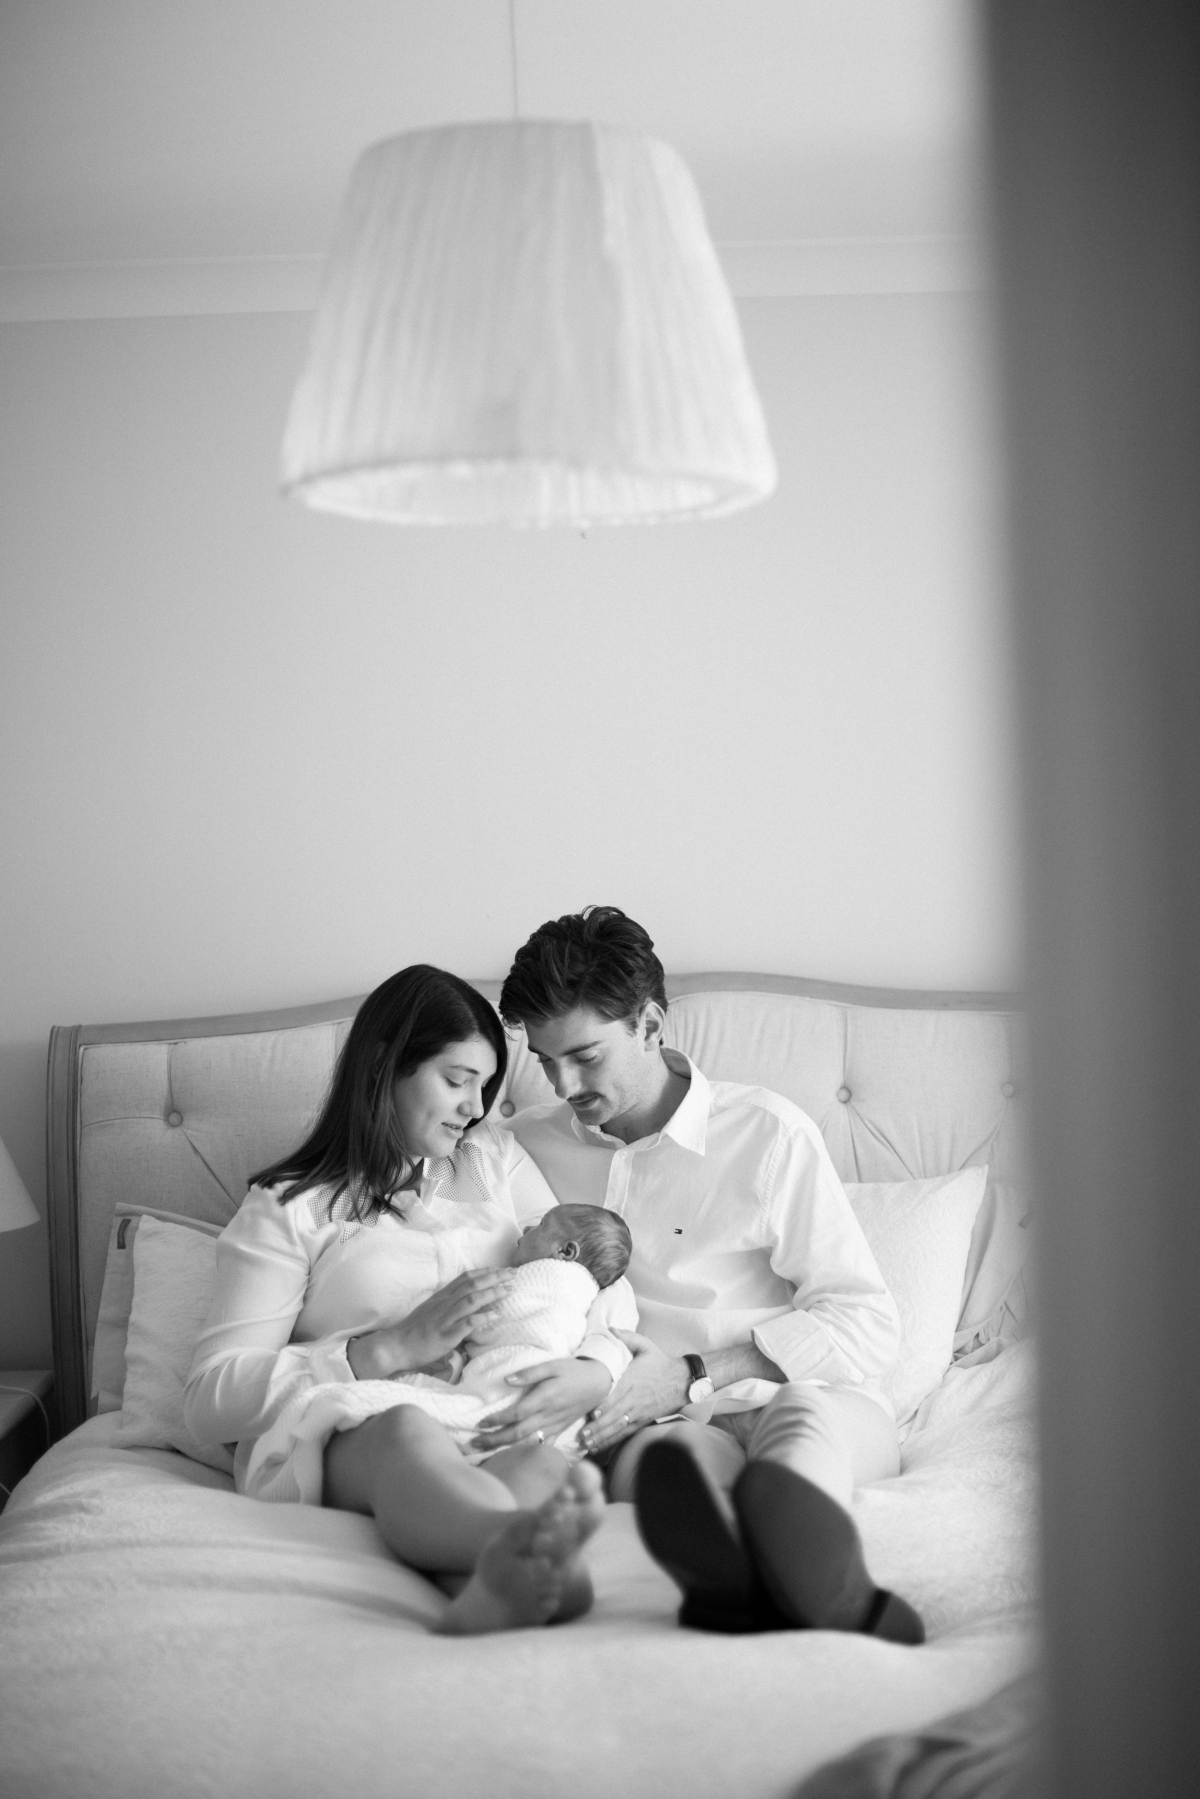 View More: http://ameliaclairephoto.pass.us/jarra-andrew-martin-bruce